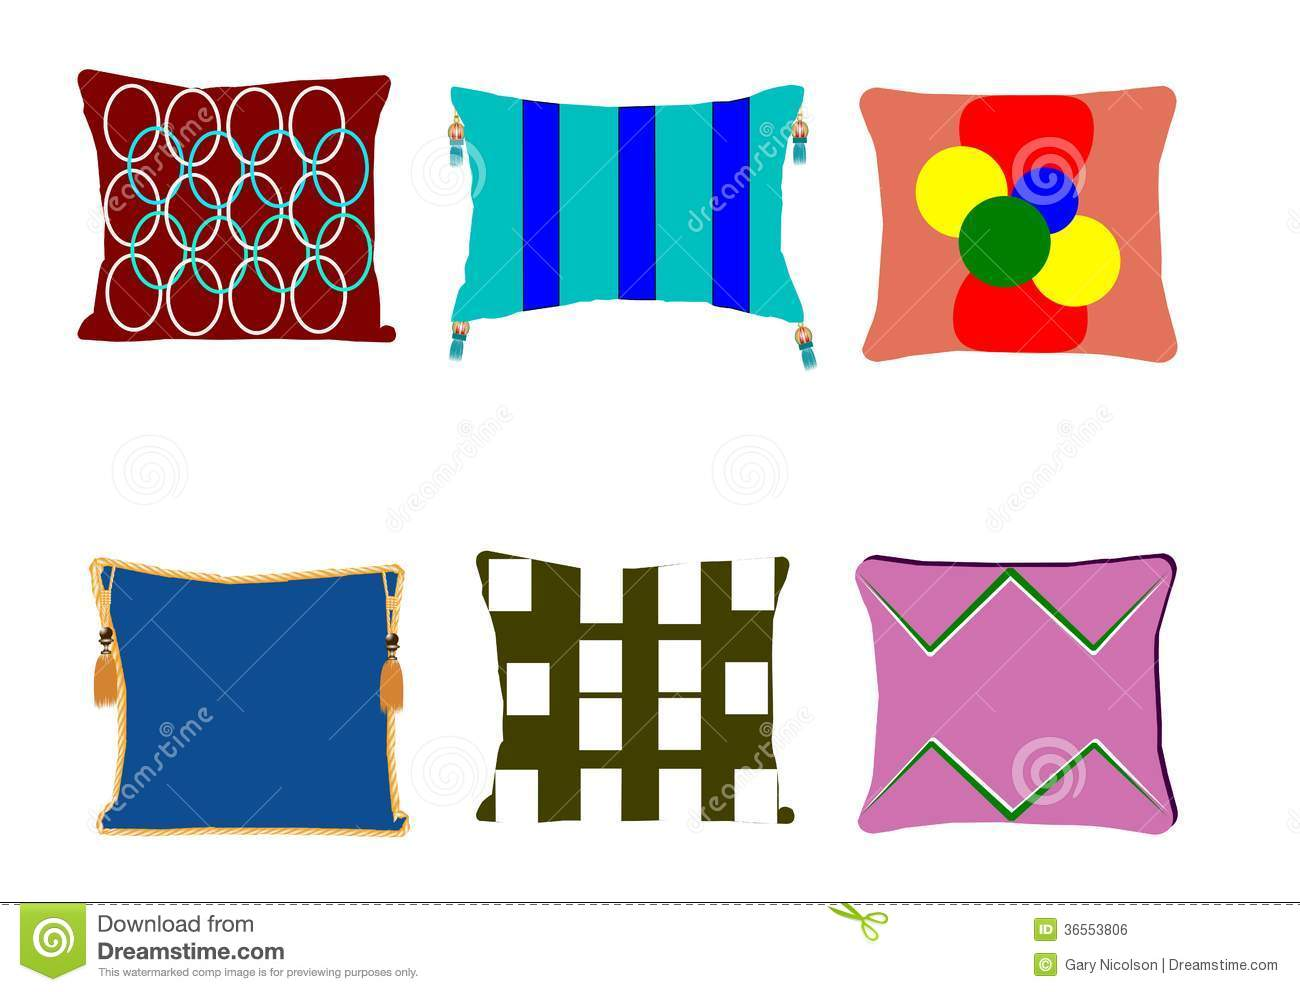 funky pillows stories  funky throw pillows axkacom american  - funky pillows